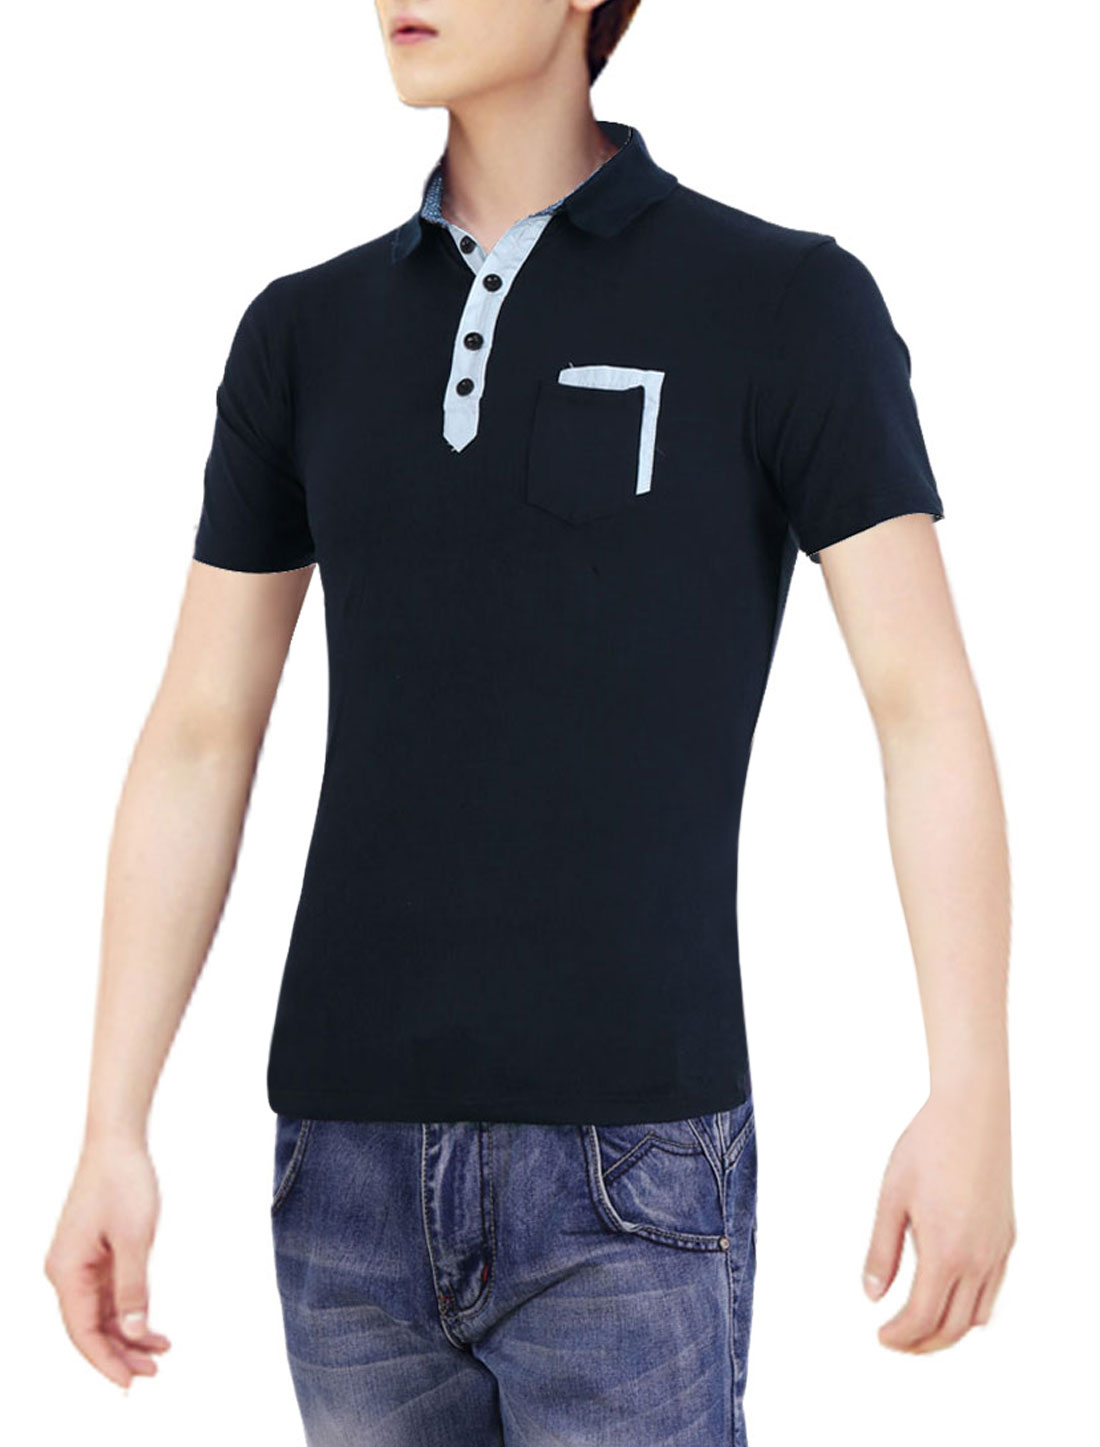 Navy Blue S Round Hem Chest Pocket Point Collar Summer Men Polo Shirt